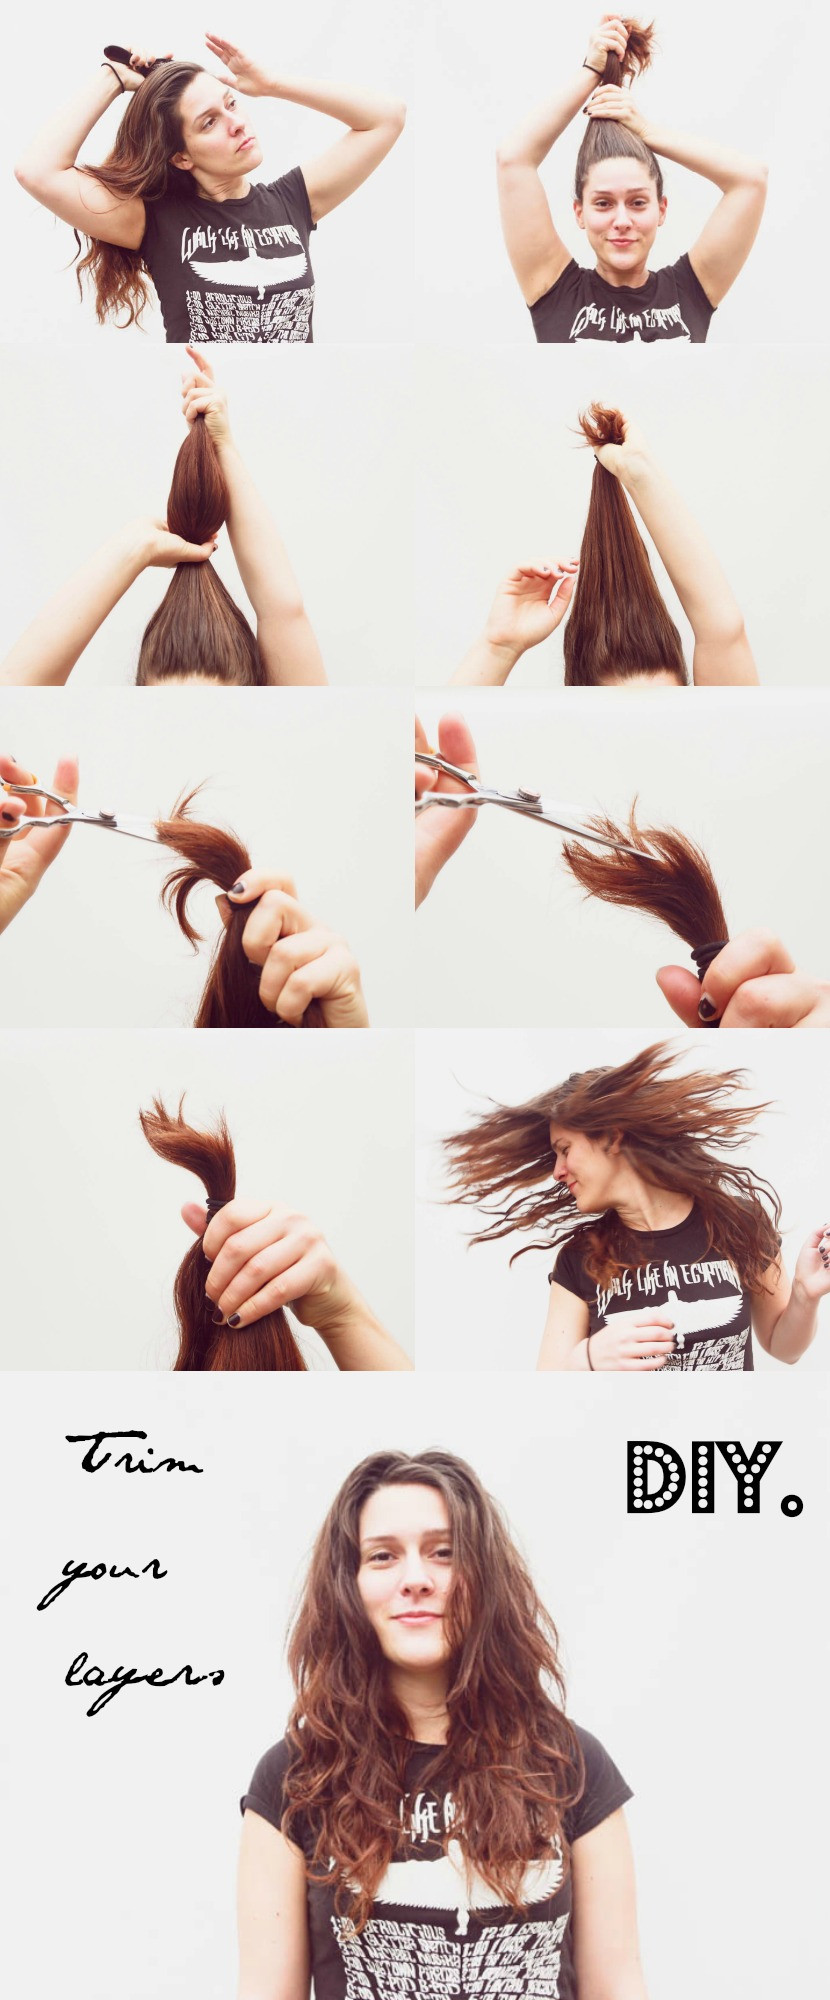 Best ideas about Diy Hair Cut . Save or Pin Diy haircuts for long hair Now.